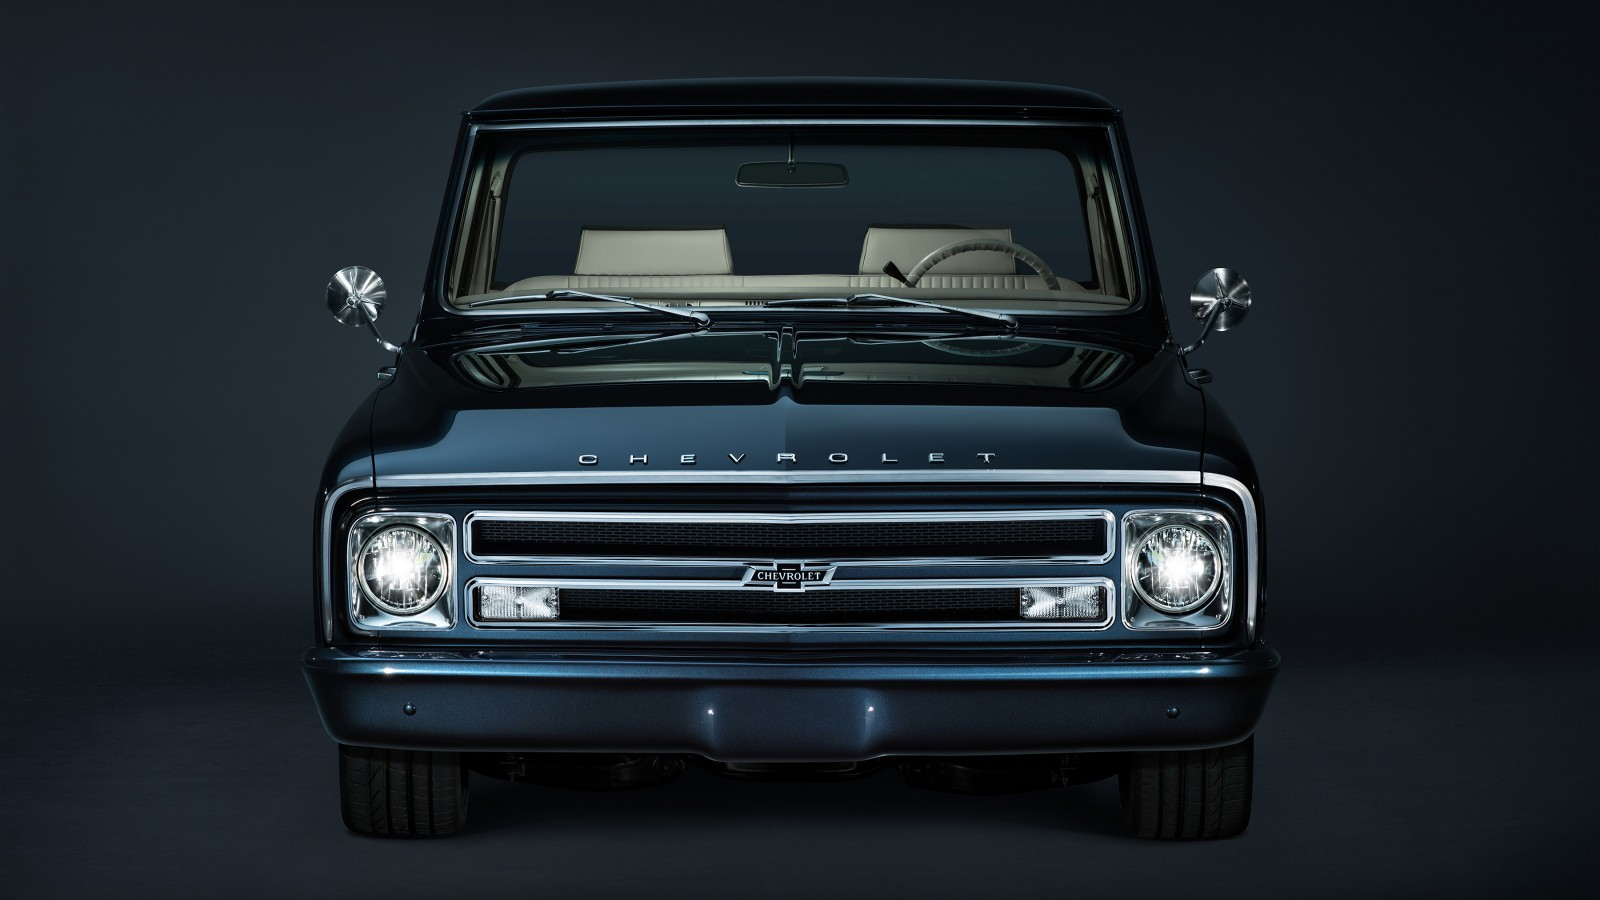 1967 Chevrolet C10 Centennial Sema Truck Wallpaper Hd